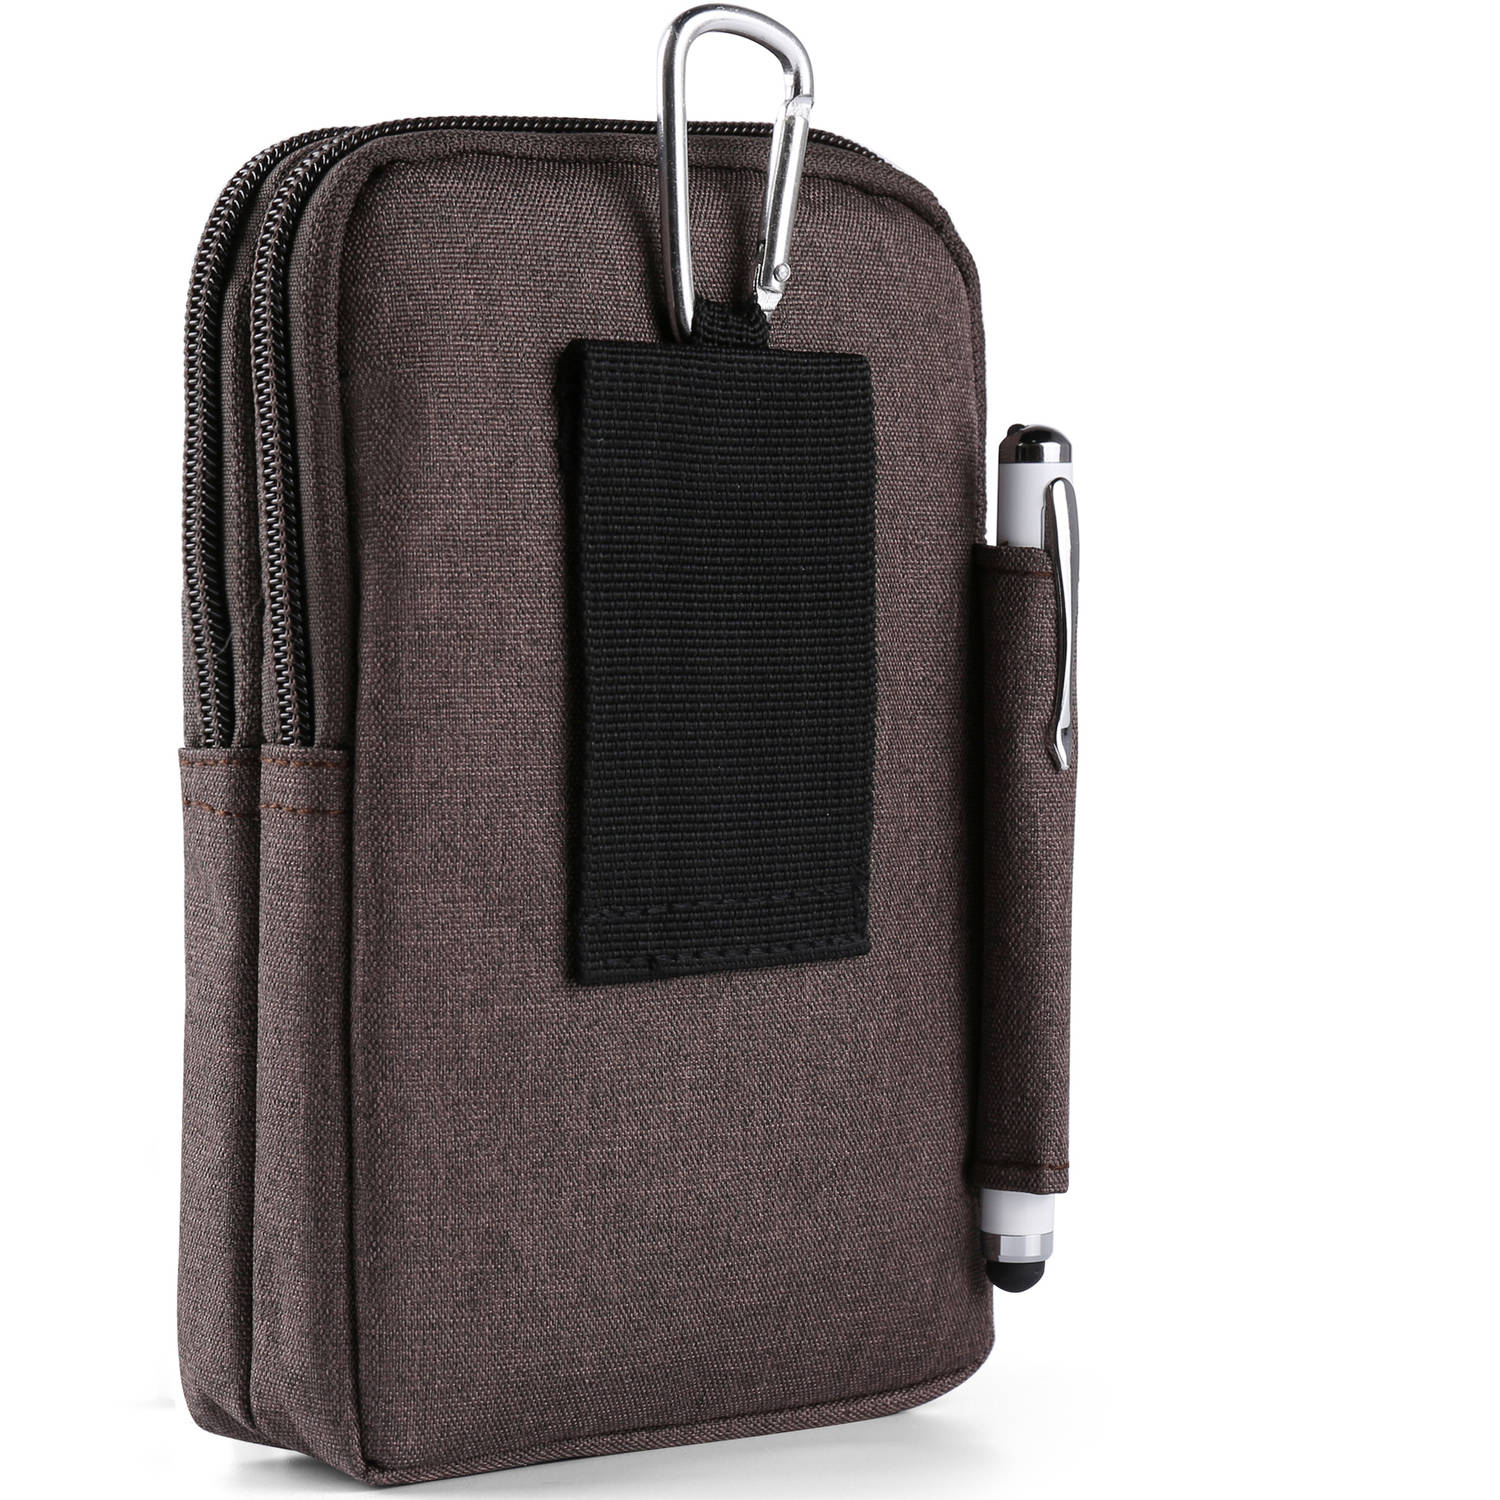 new style 6d097 30679 Universal Utility Travel Waist Pouch Carrying Case for Apple iPhones and  Android Phone Devices